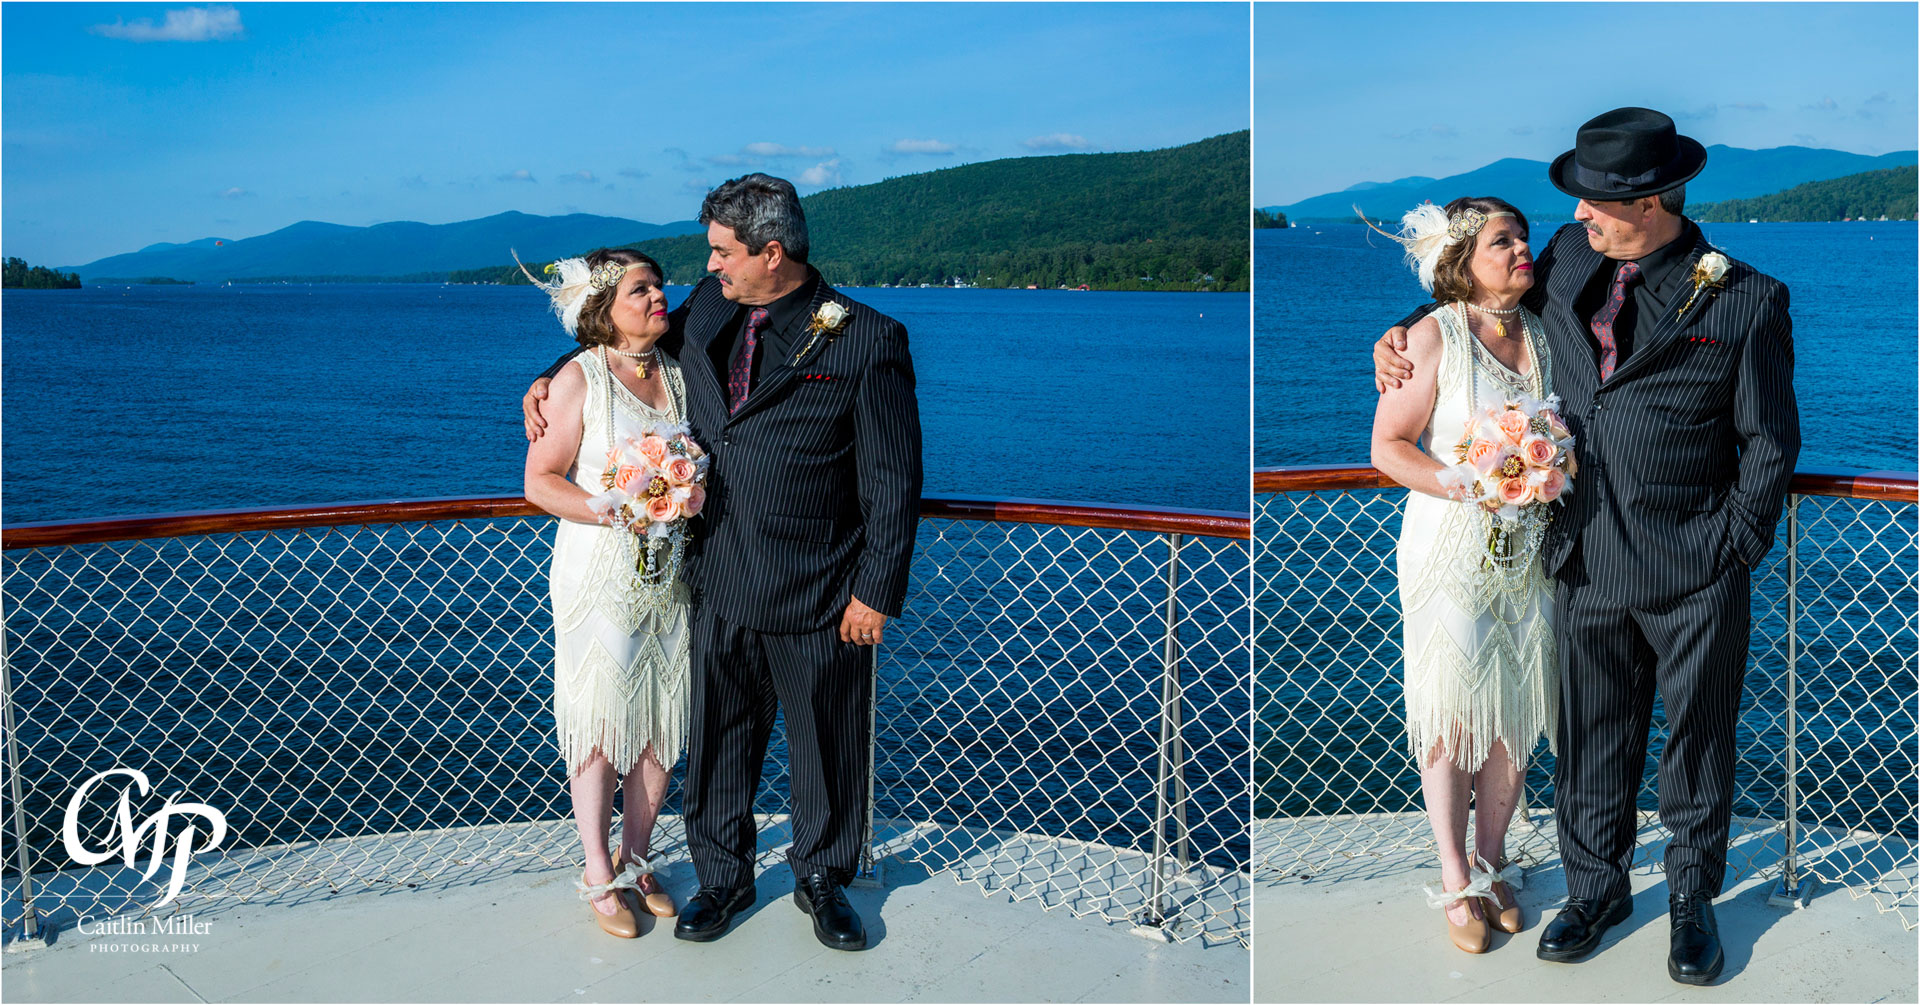 bombard-20.jpg from Jan and Robert's vow renewal on shoreline Cruise's Adirondac Boat on Lake George, NY by Saratoga Wedding Photographer Caitlin Miller Photography. Lake George Wedding Photographer. Stamford wedding photographer. Albany wedding photographer. Shoreline Cruises Wedding Photographer. Saratoga Wedding Photographer